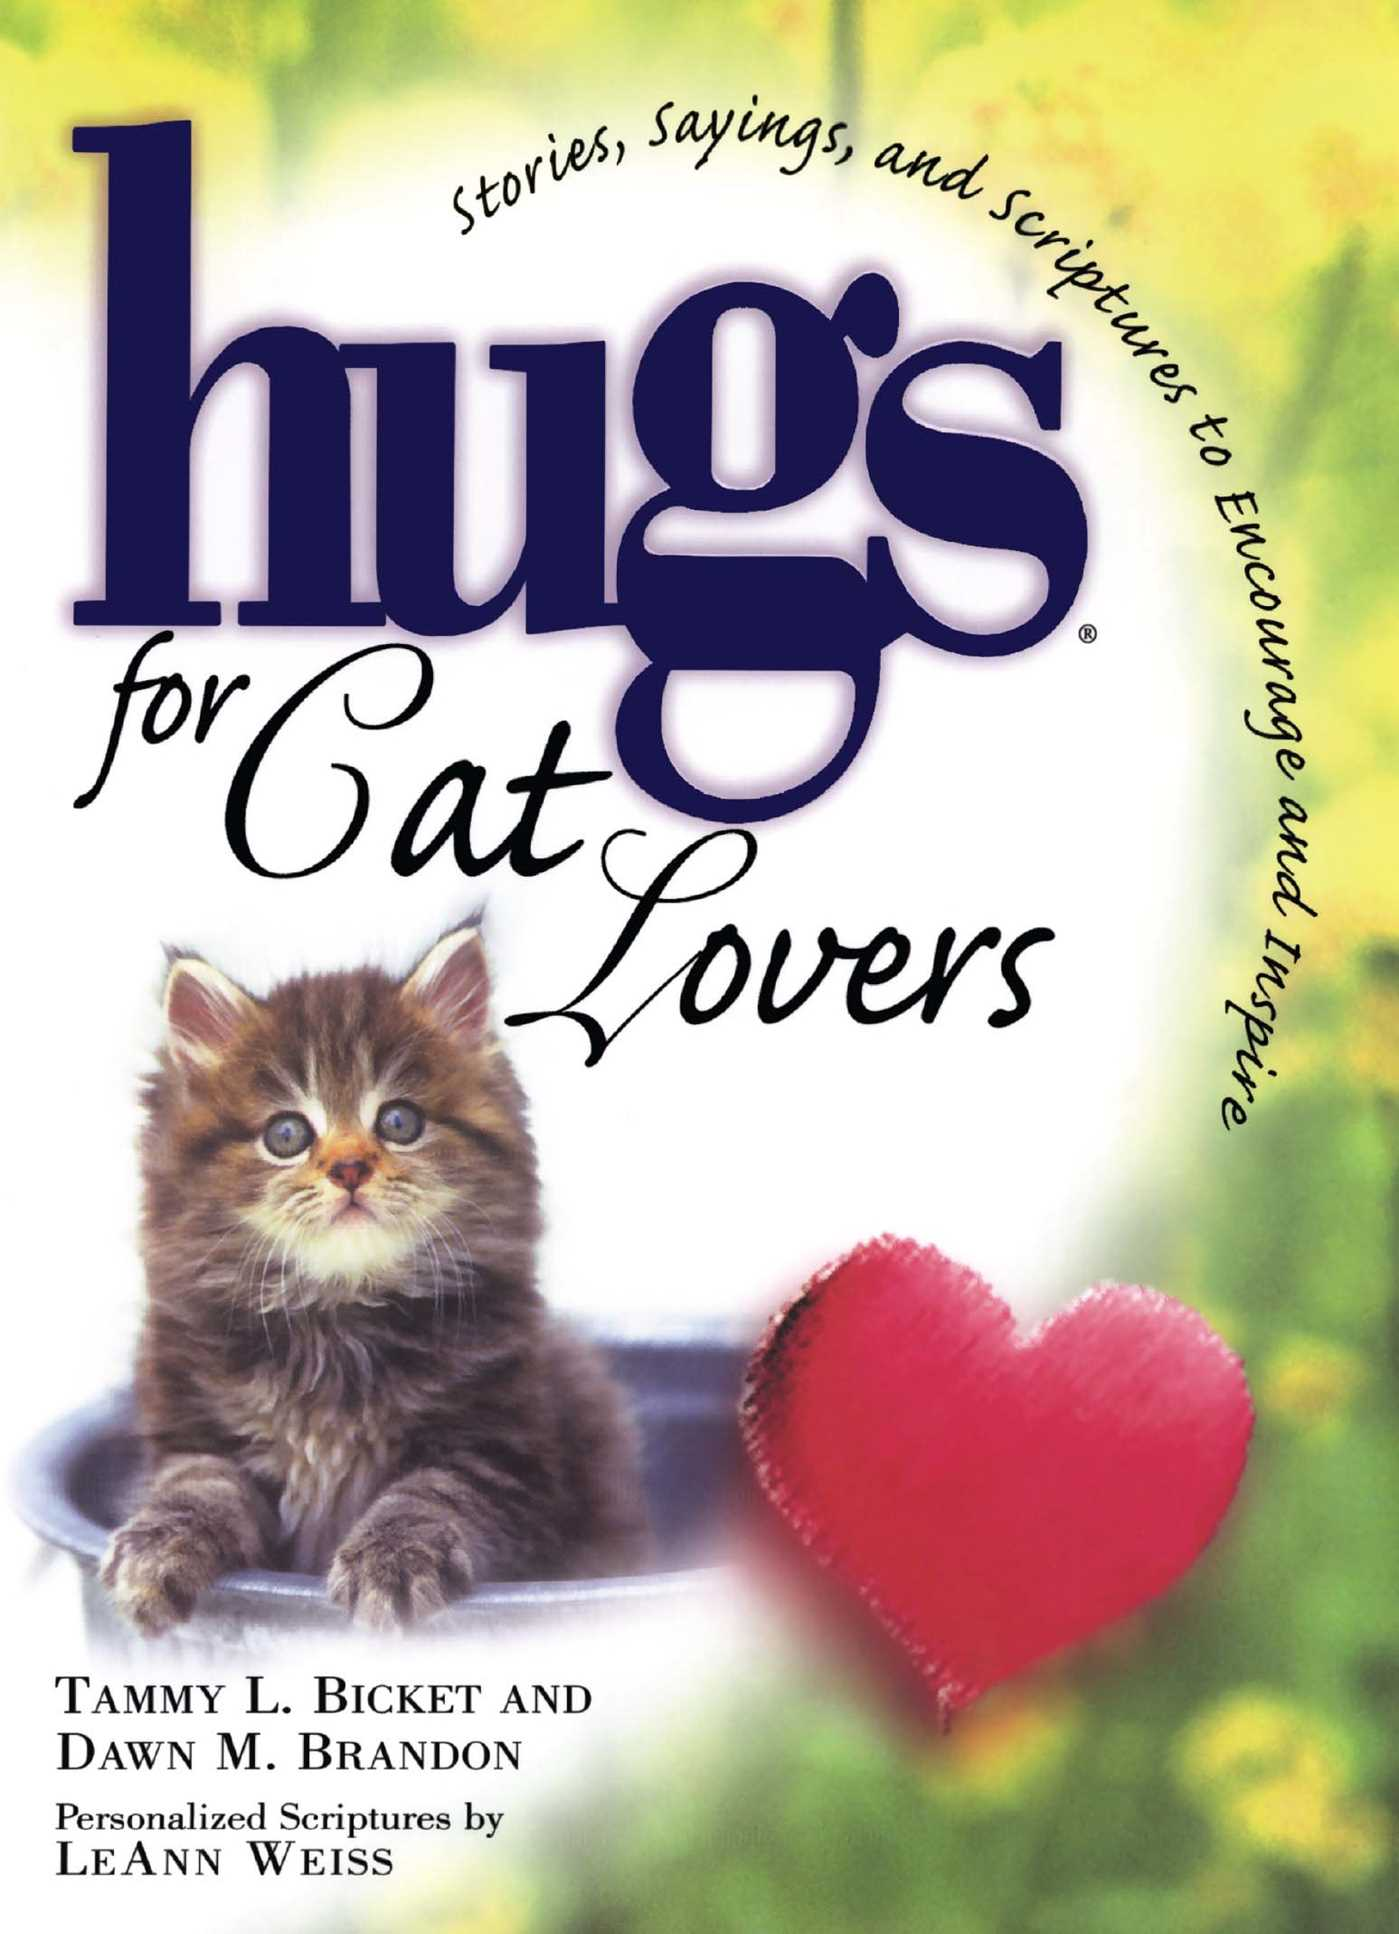 Dating for cat lovers uk